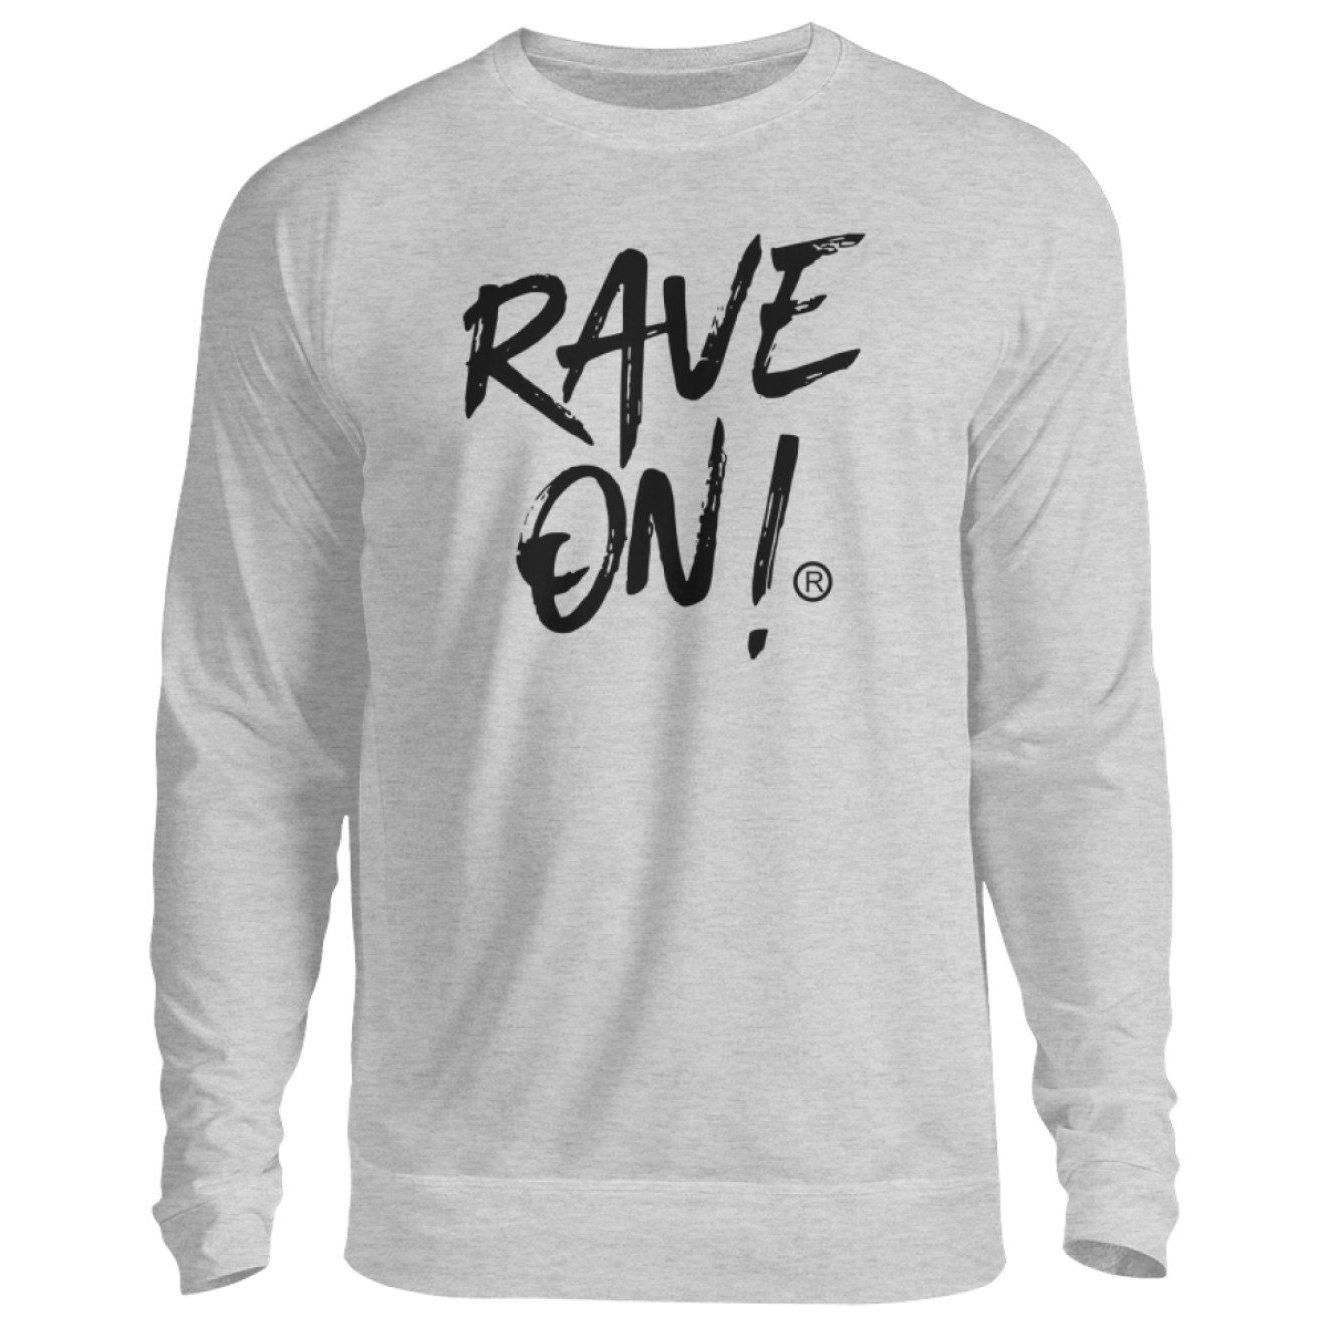 RAVE ON!® Light Collection - Unisex Pullover-Unisex Sweatshirt-Grau (Meliert)-S-Rave-On! I www.rave-on.shop I Deine Rave & Techno Szene Shop I Design - RAVE ON!® Light Collection - Sexy Festival Streetwear , Clubwear & Raver Style